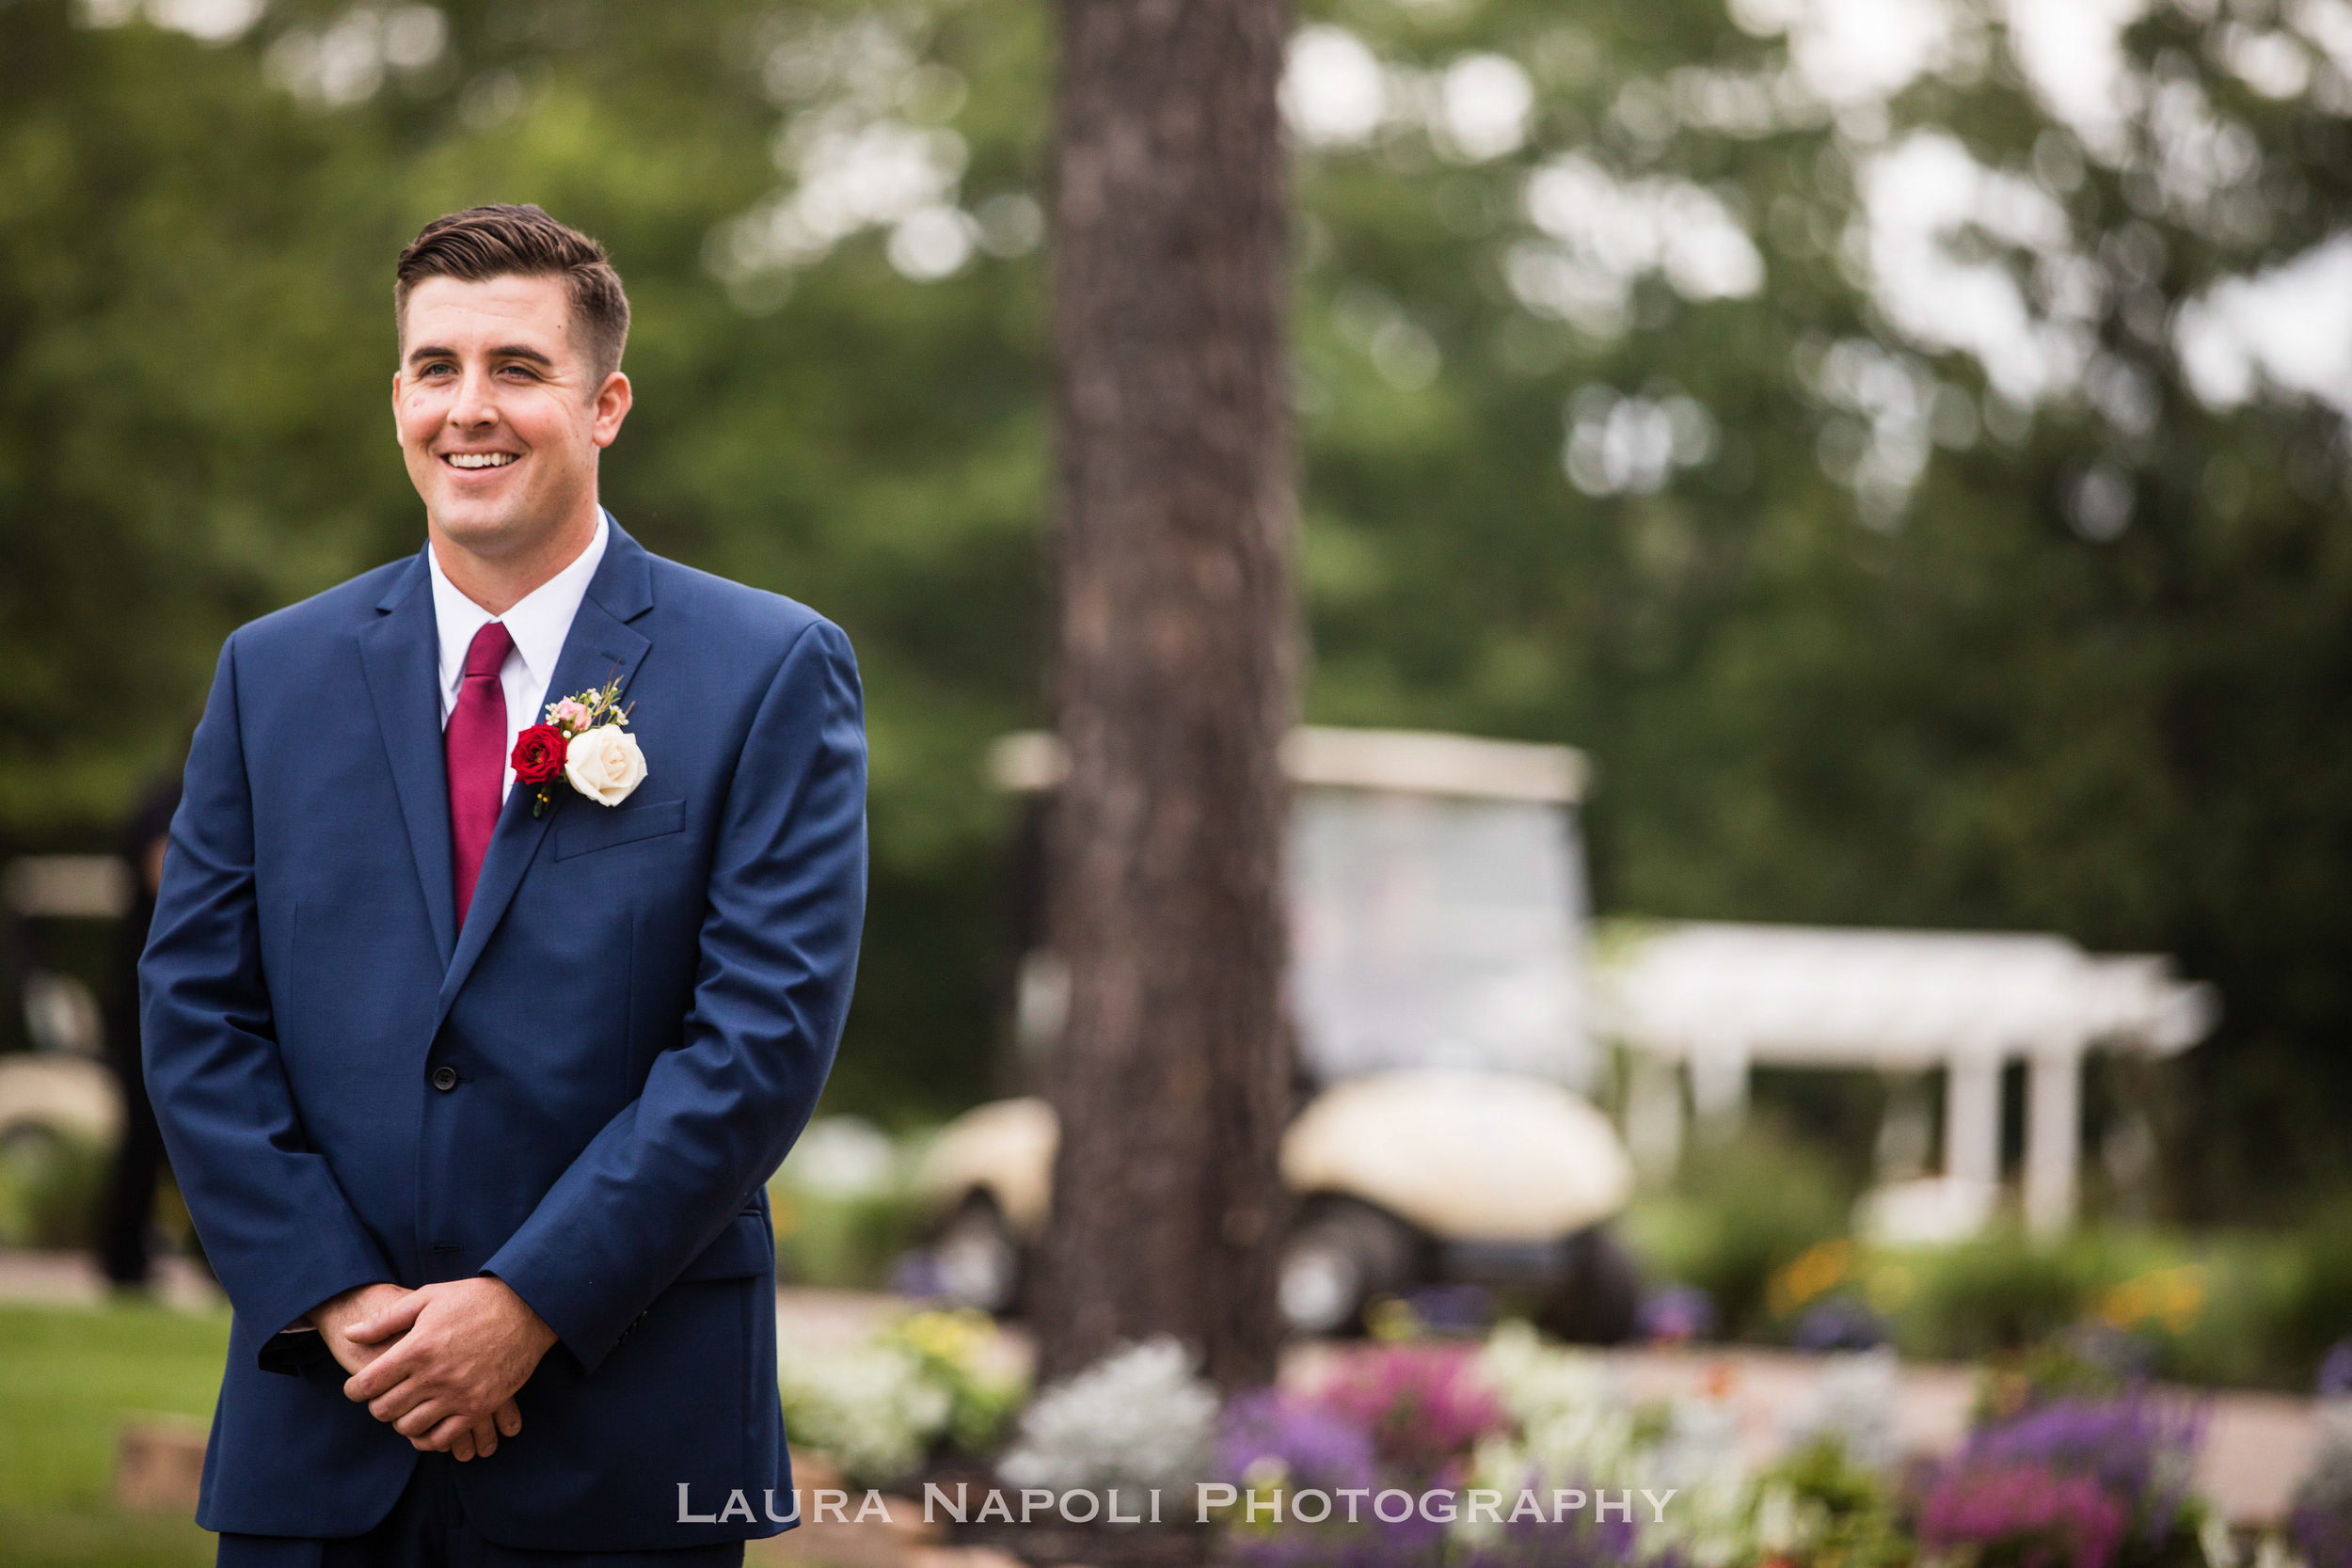 Runningdeergolfclubwedding-7.jpg